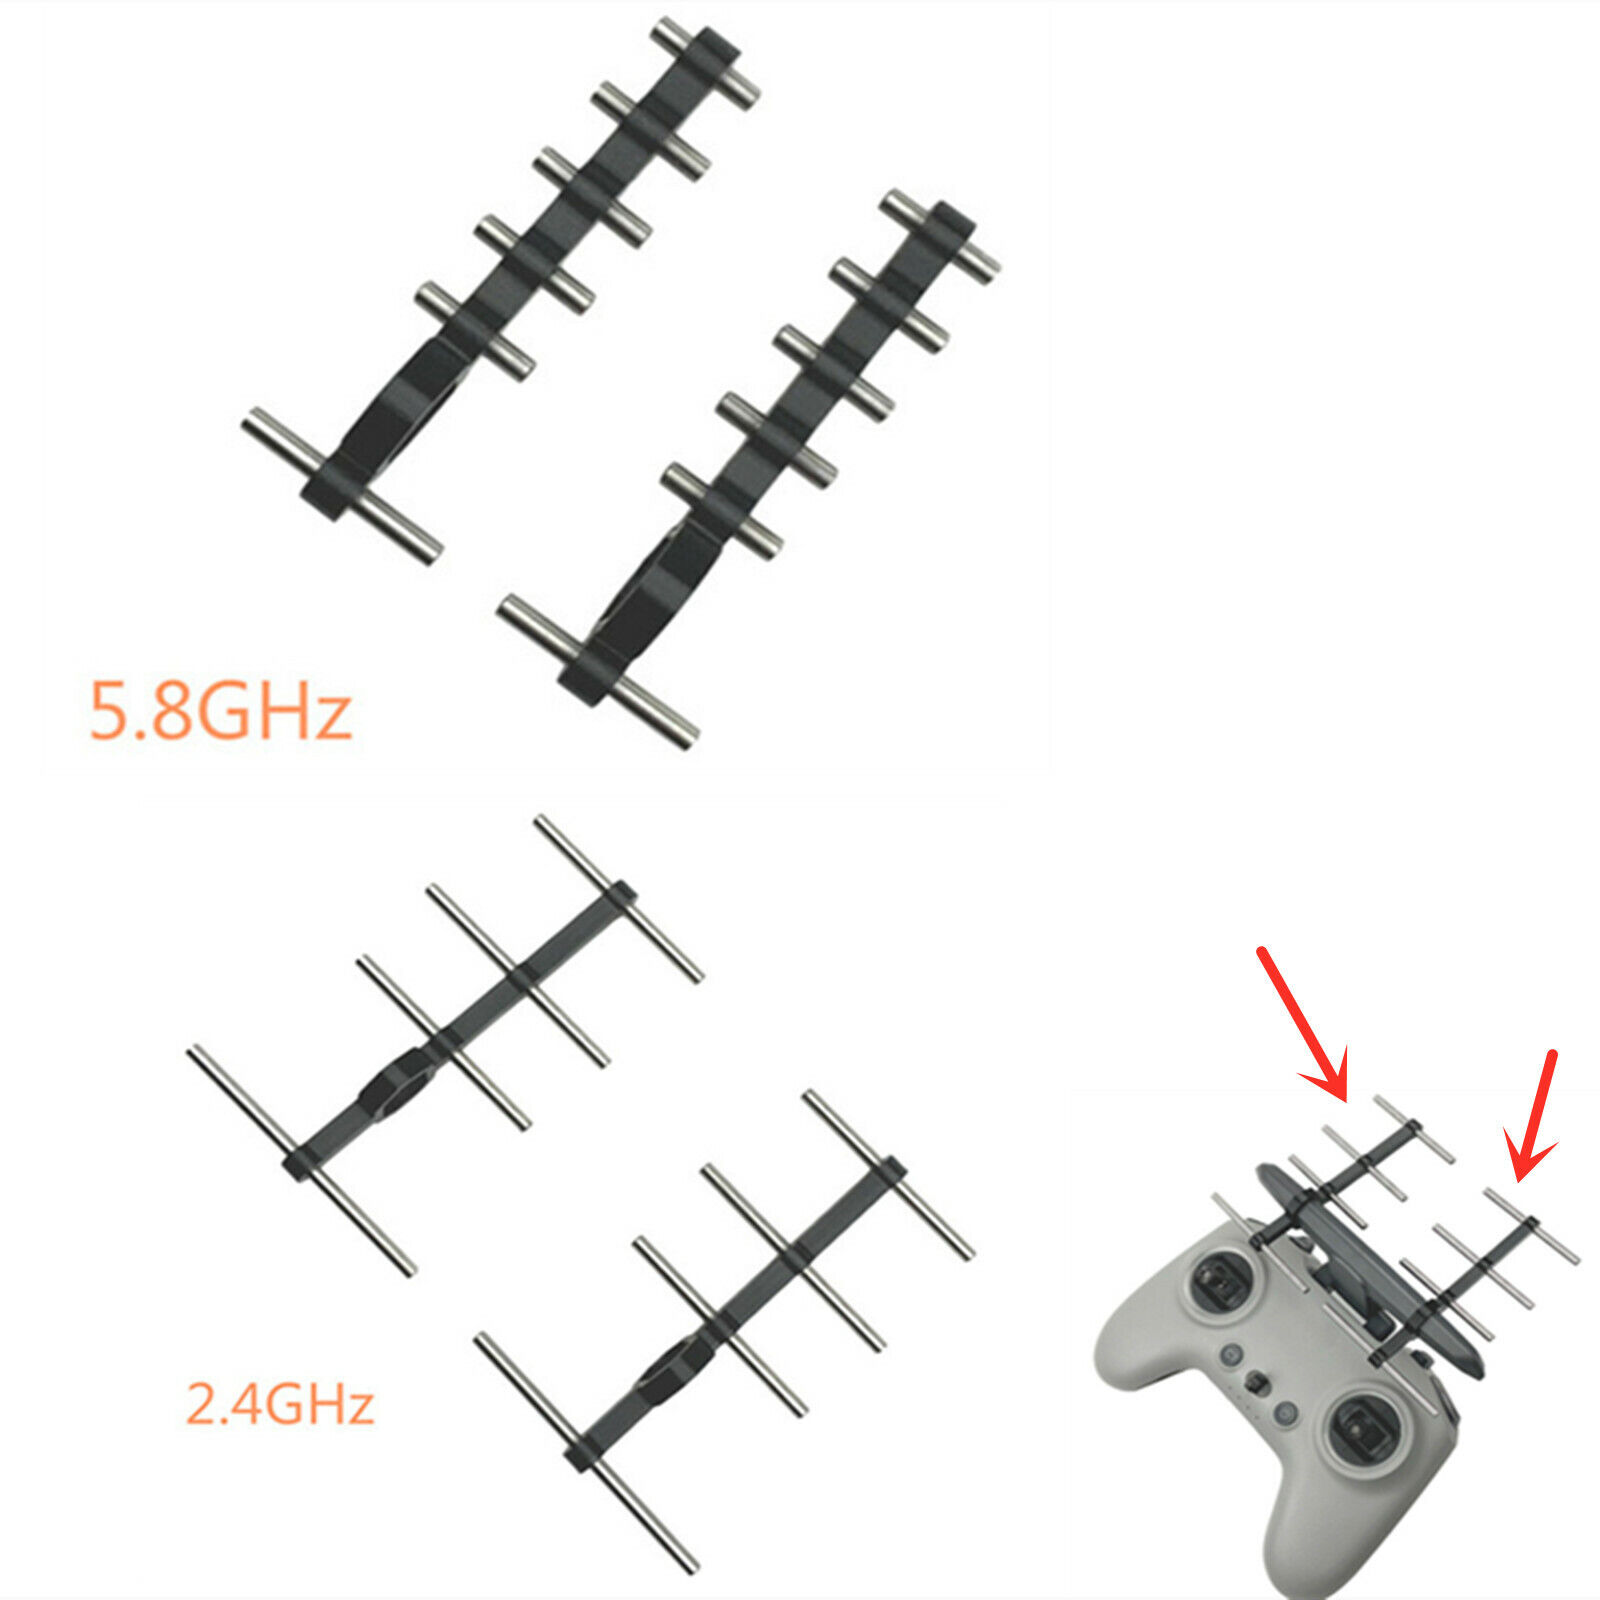 2.4/5.8GHz Signal Booster Extended Range Yagi Antenna for DJI FPV Remote Control